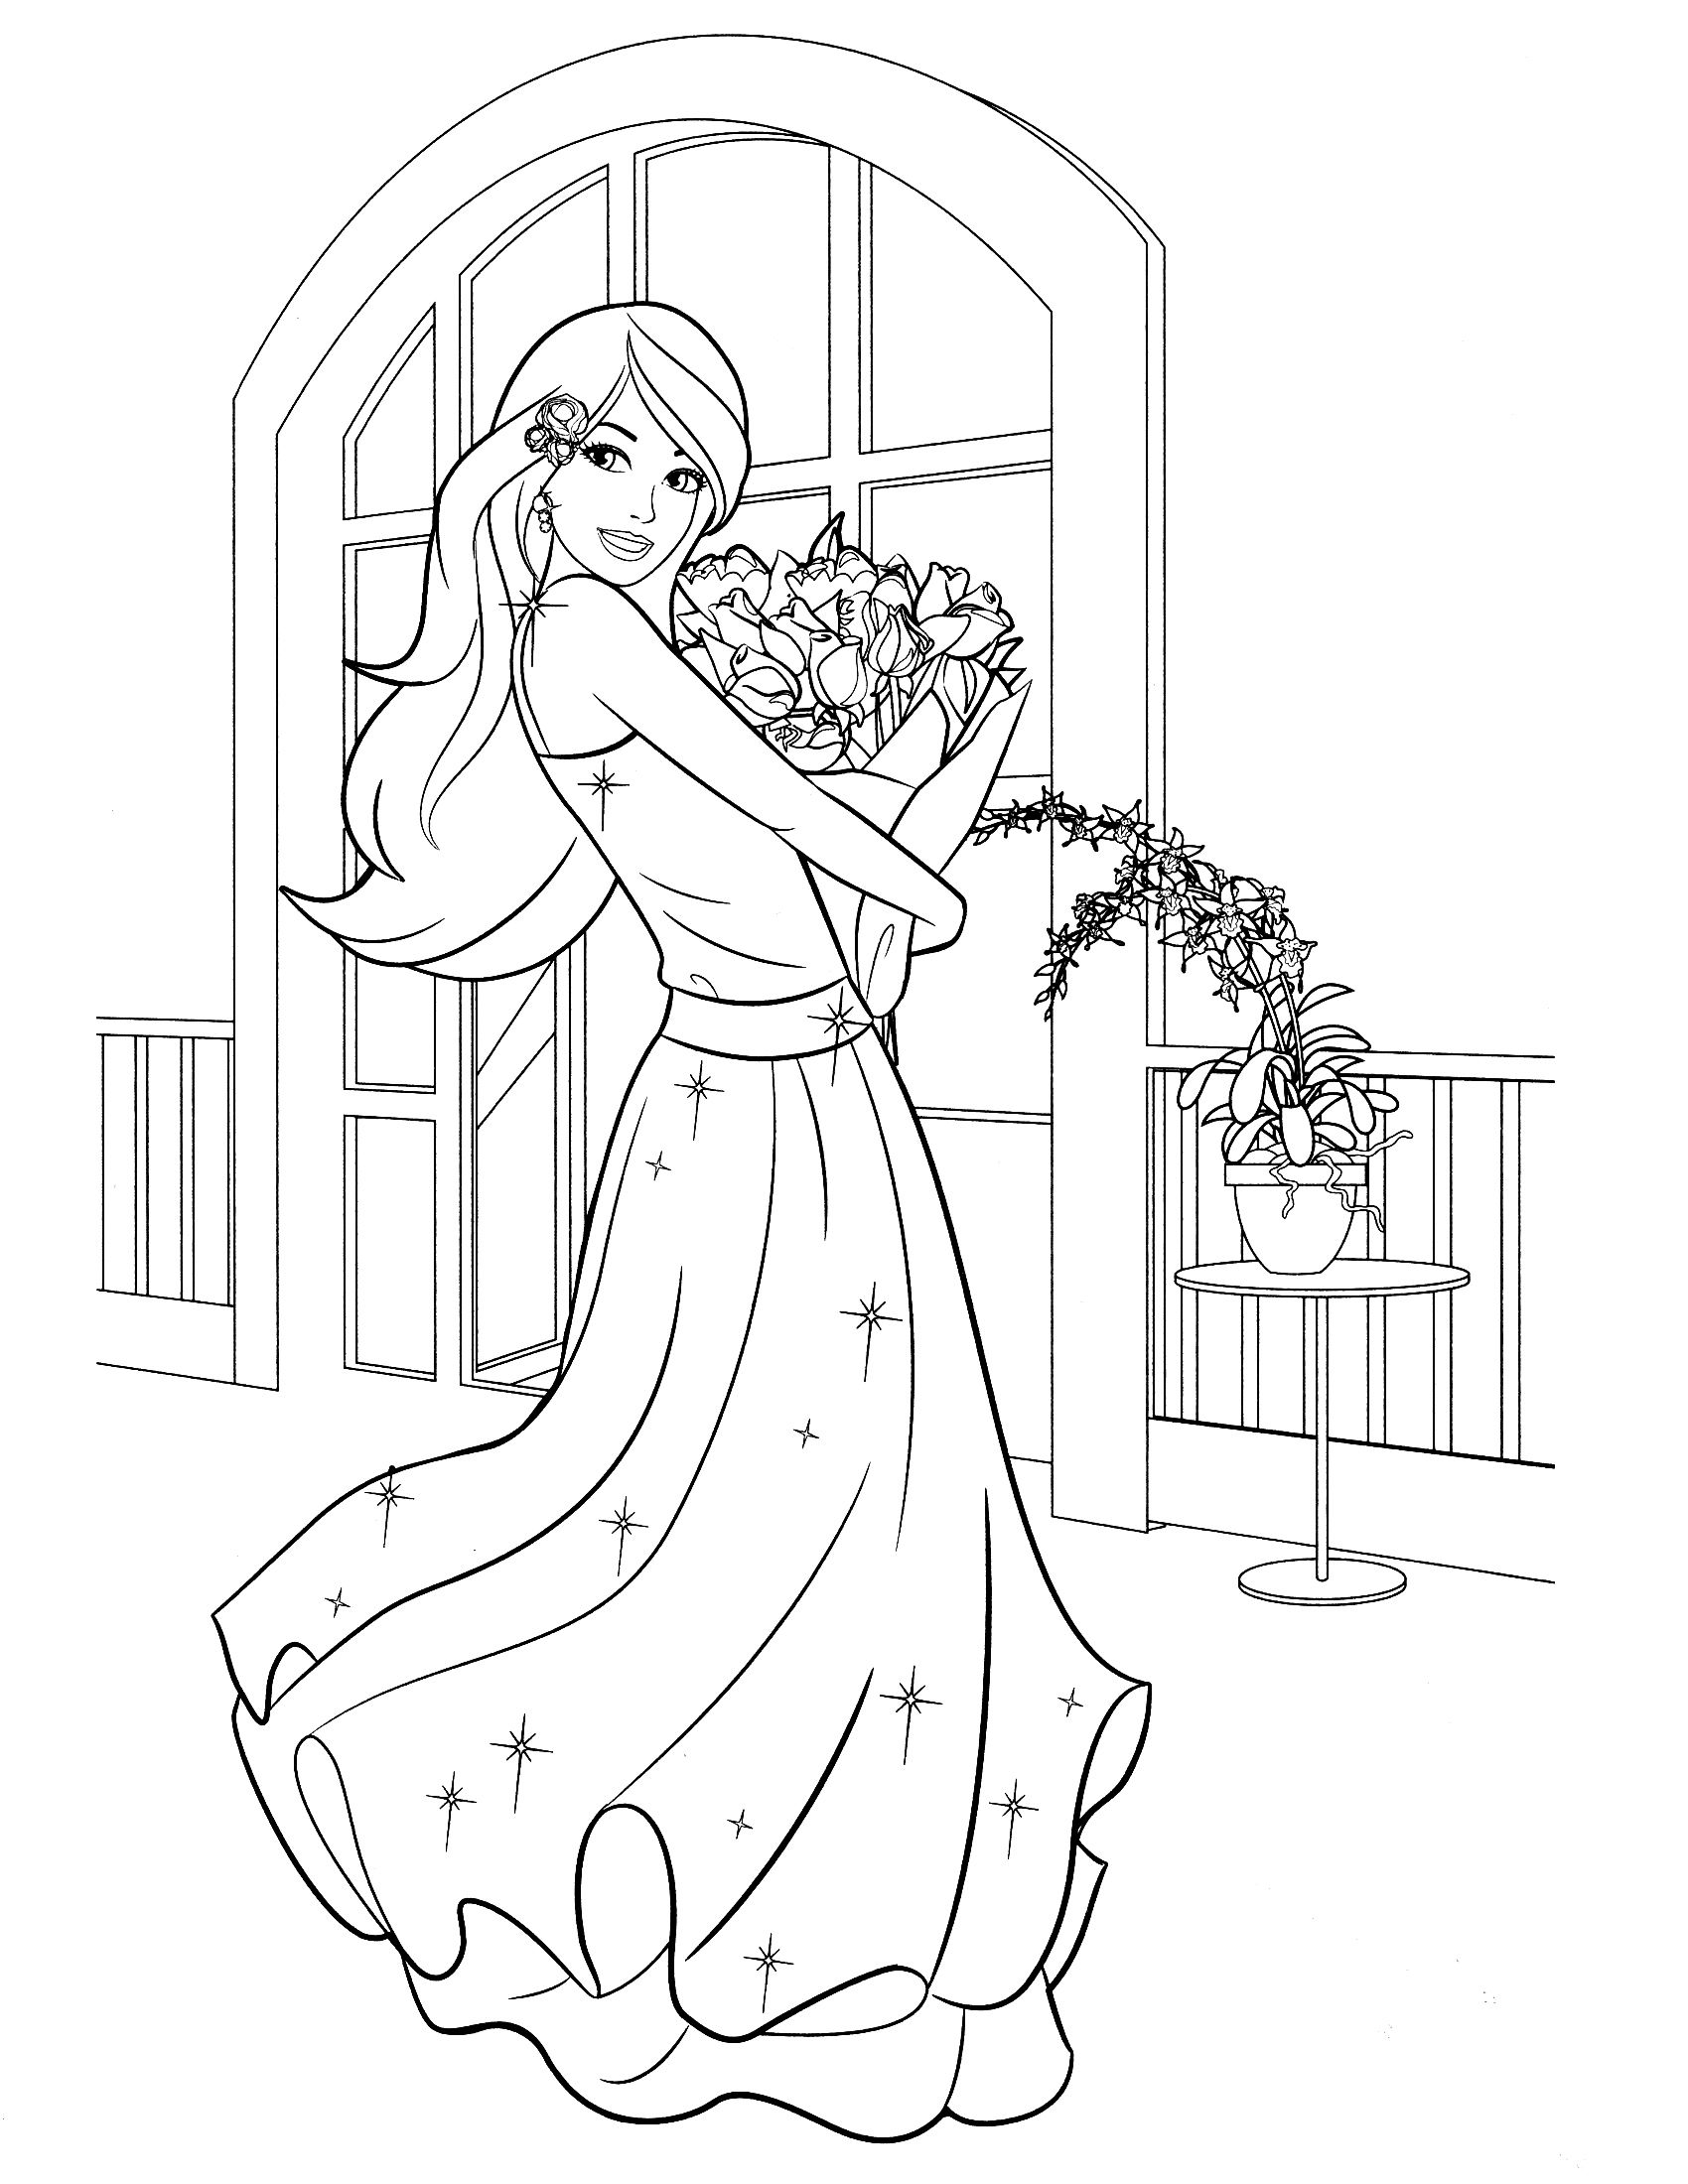 Ausmalbilder Barbie Feen : Free Printable Barbie Coloring Pages Pinterest